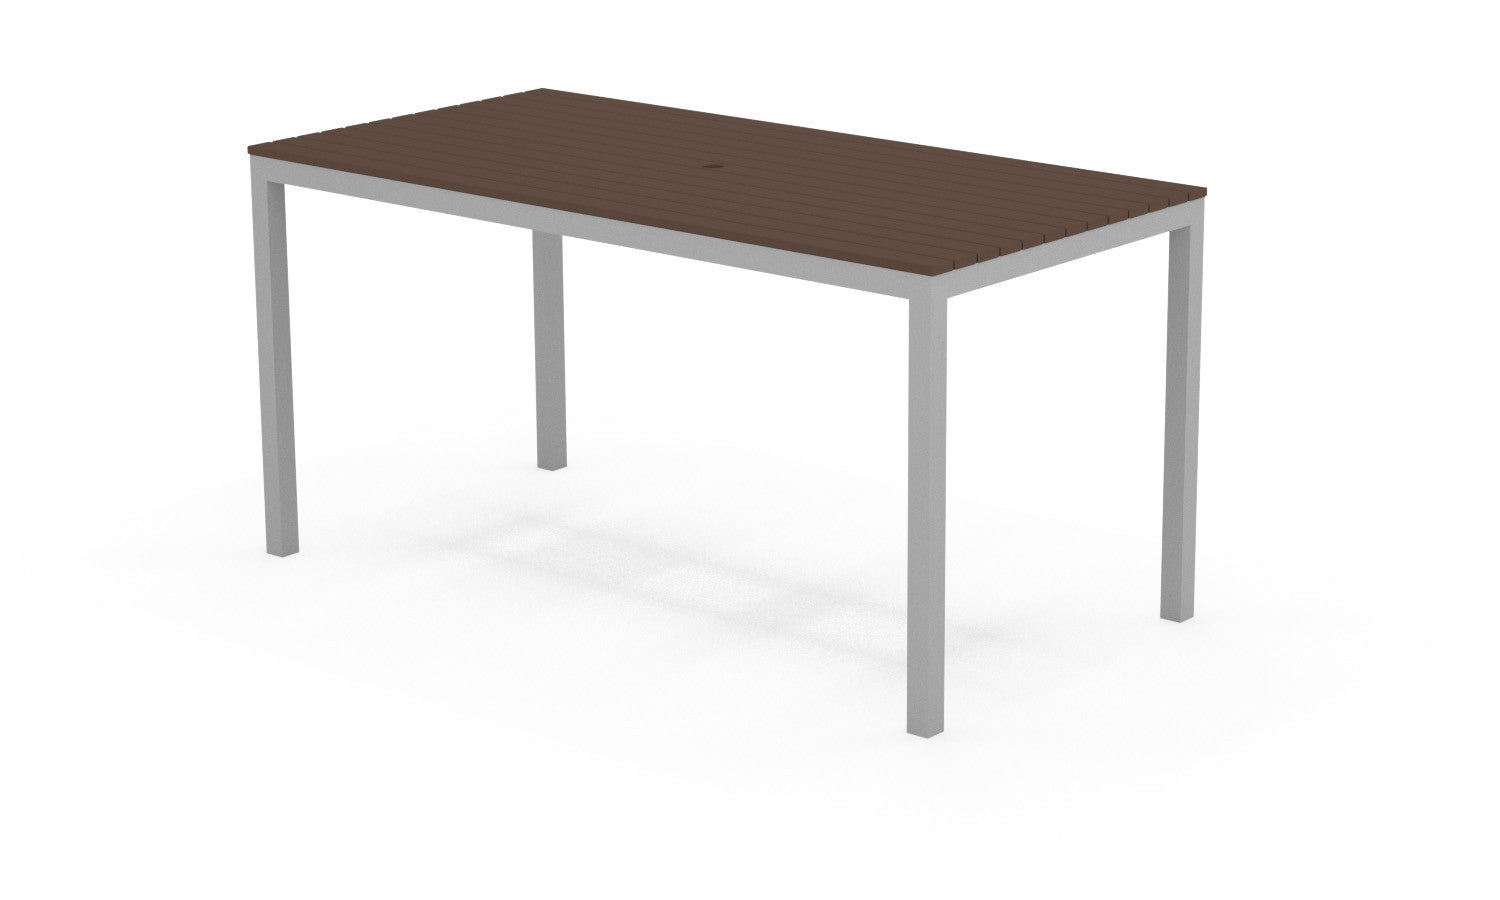 Loft Outdoor Modern Counter Height Dining Table 72 X 36